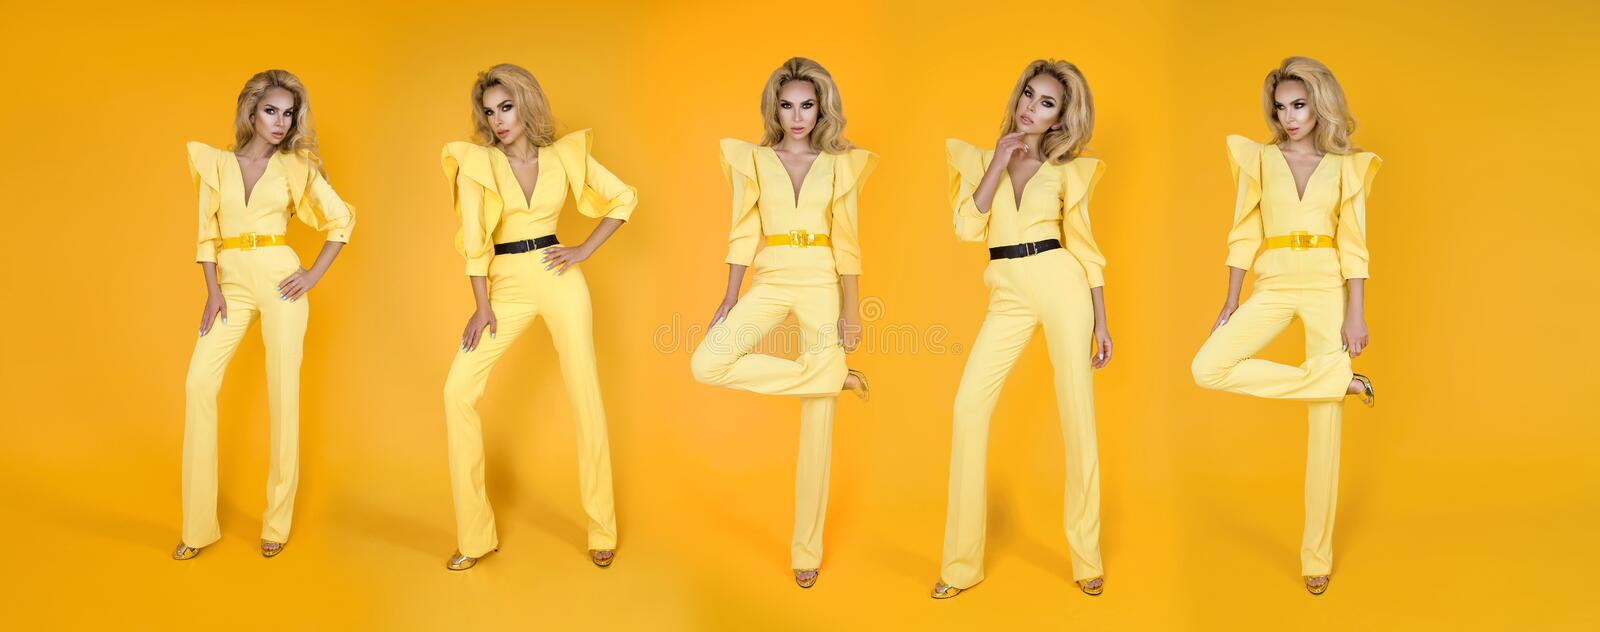 Fashionable woman in nice yellow jumpsuit, shoes and accessories. Fashion spring summer photo - Image. Fashionable woman model in nice yellow jumpsuit, shoes and royalty free stock photography